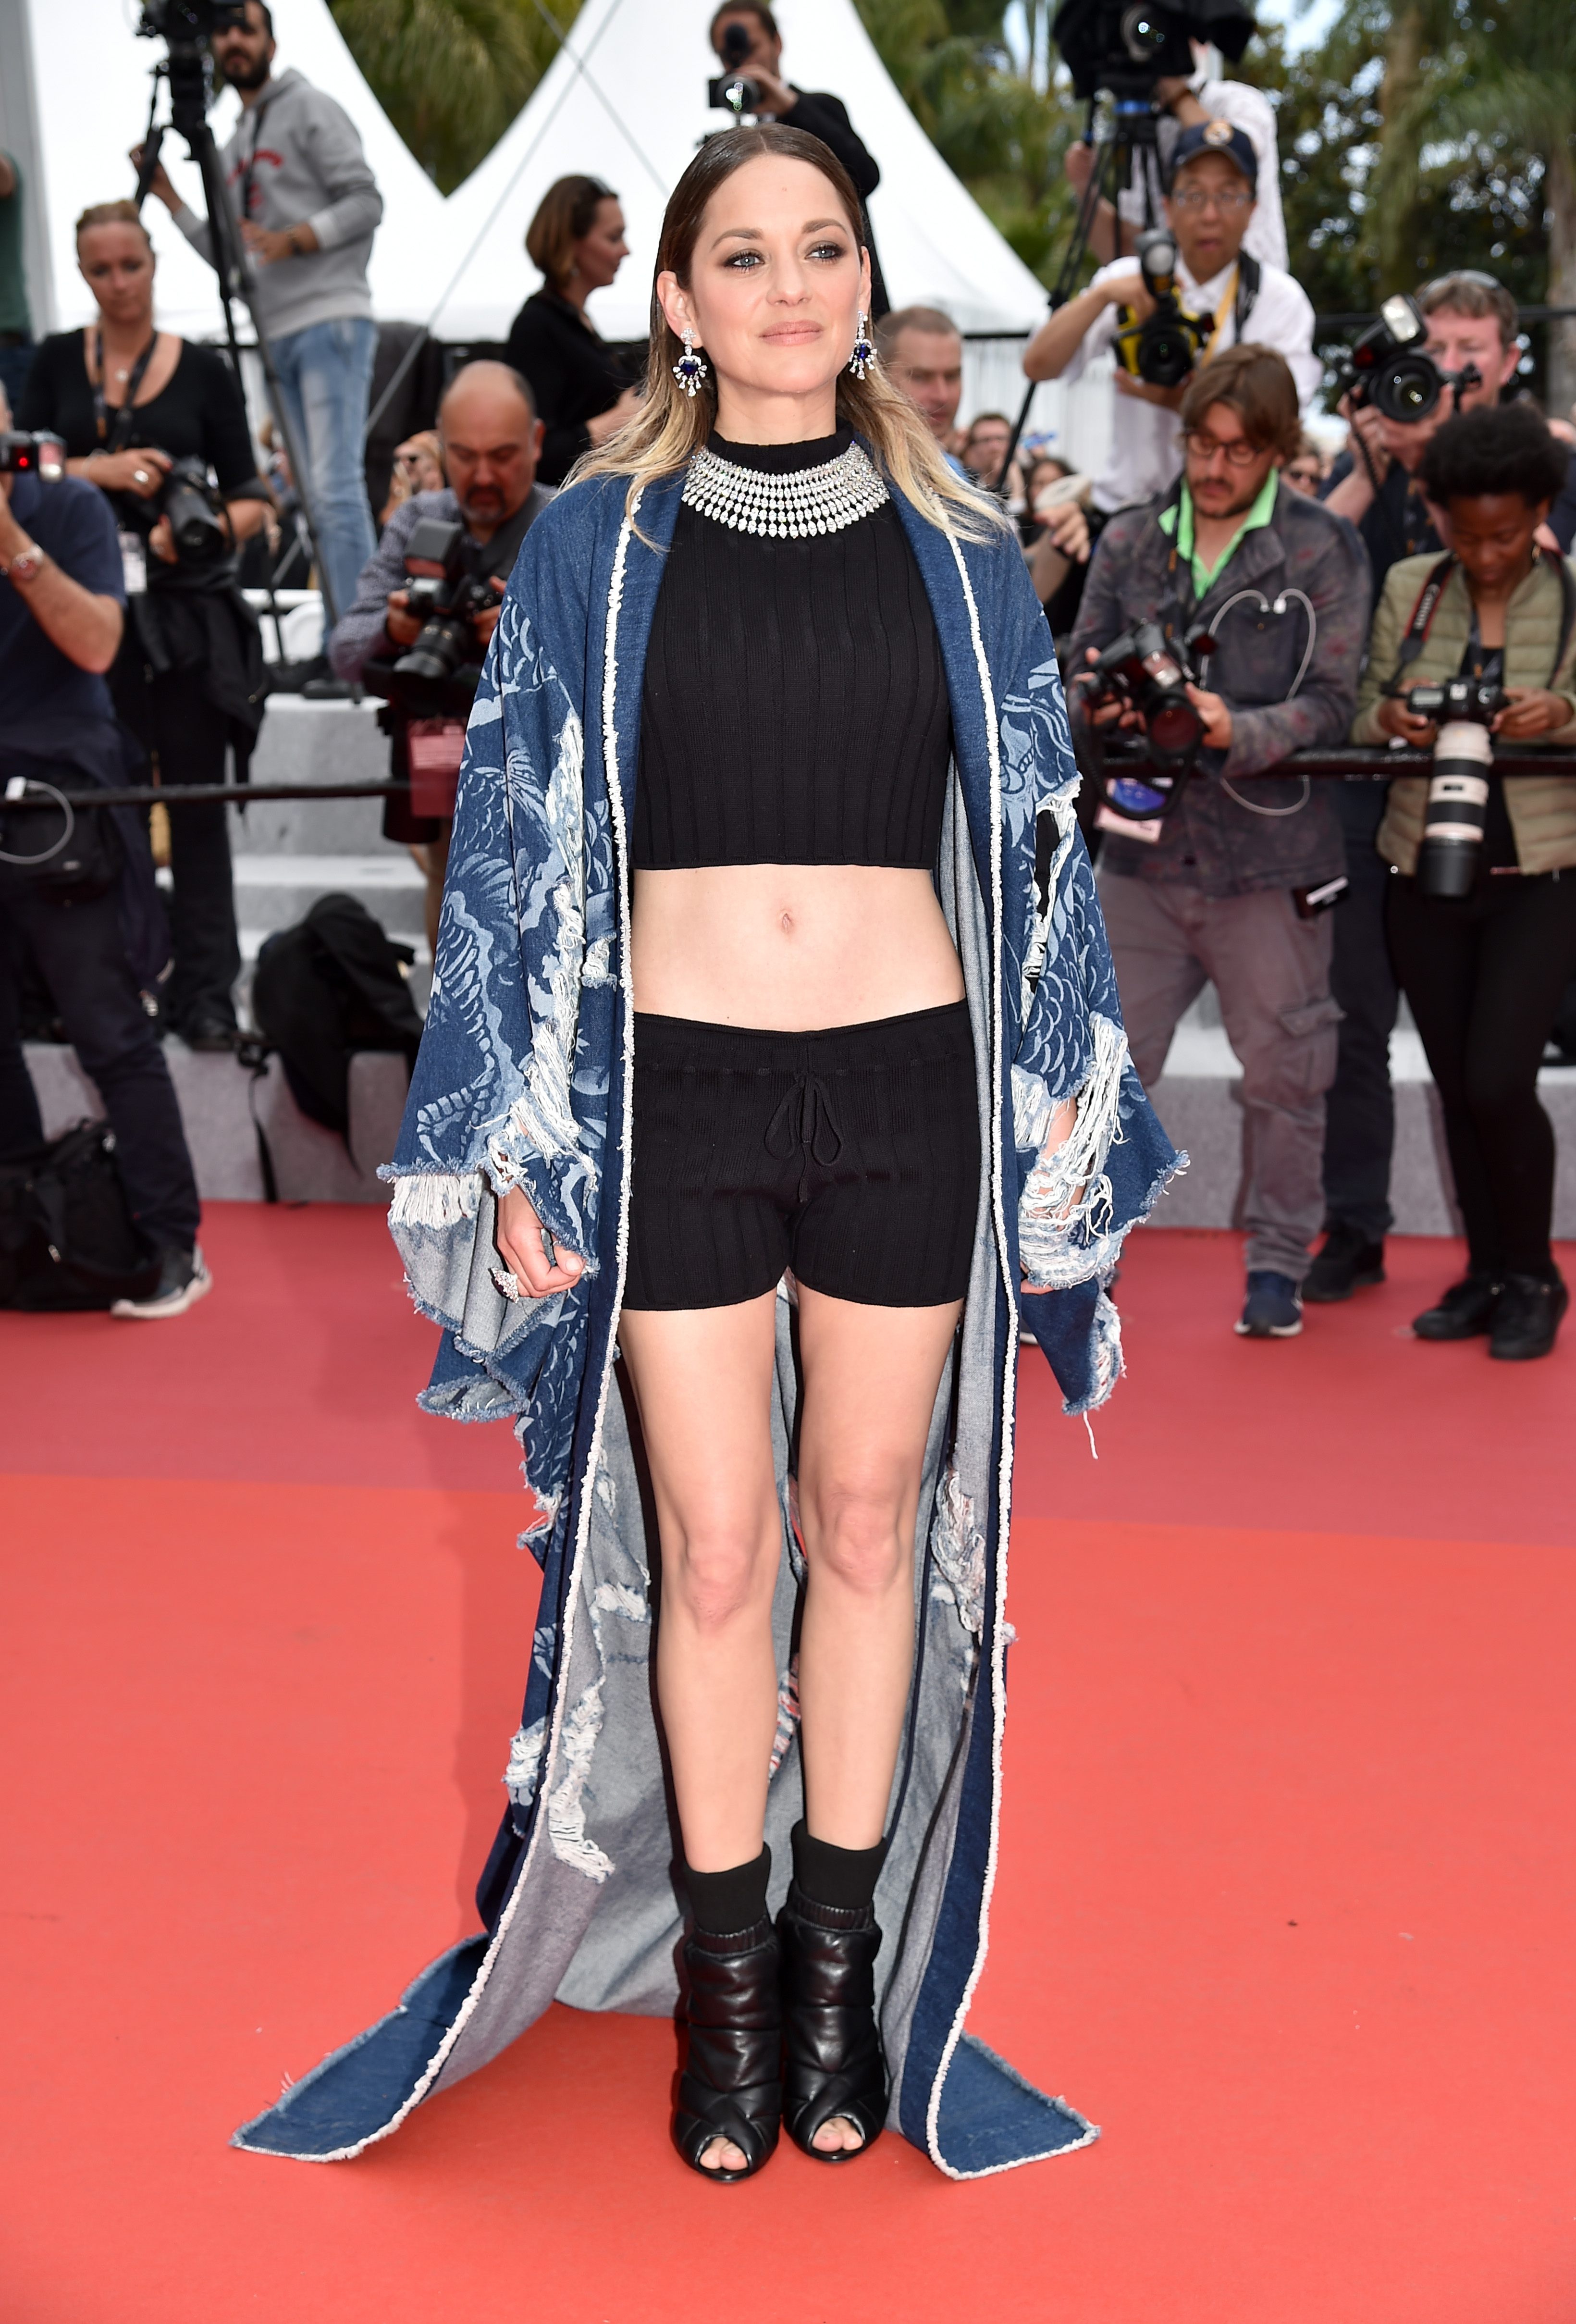 Marion Cotillard Goes Shockingly Casual At The Cannes Film